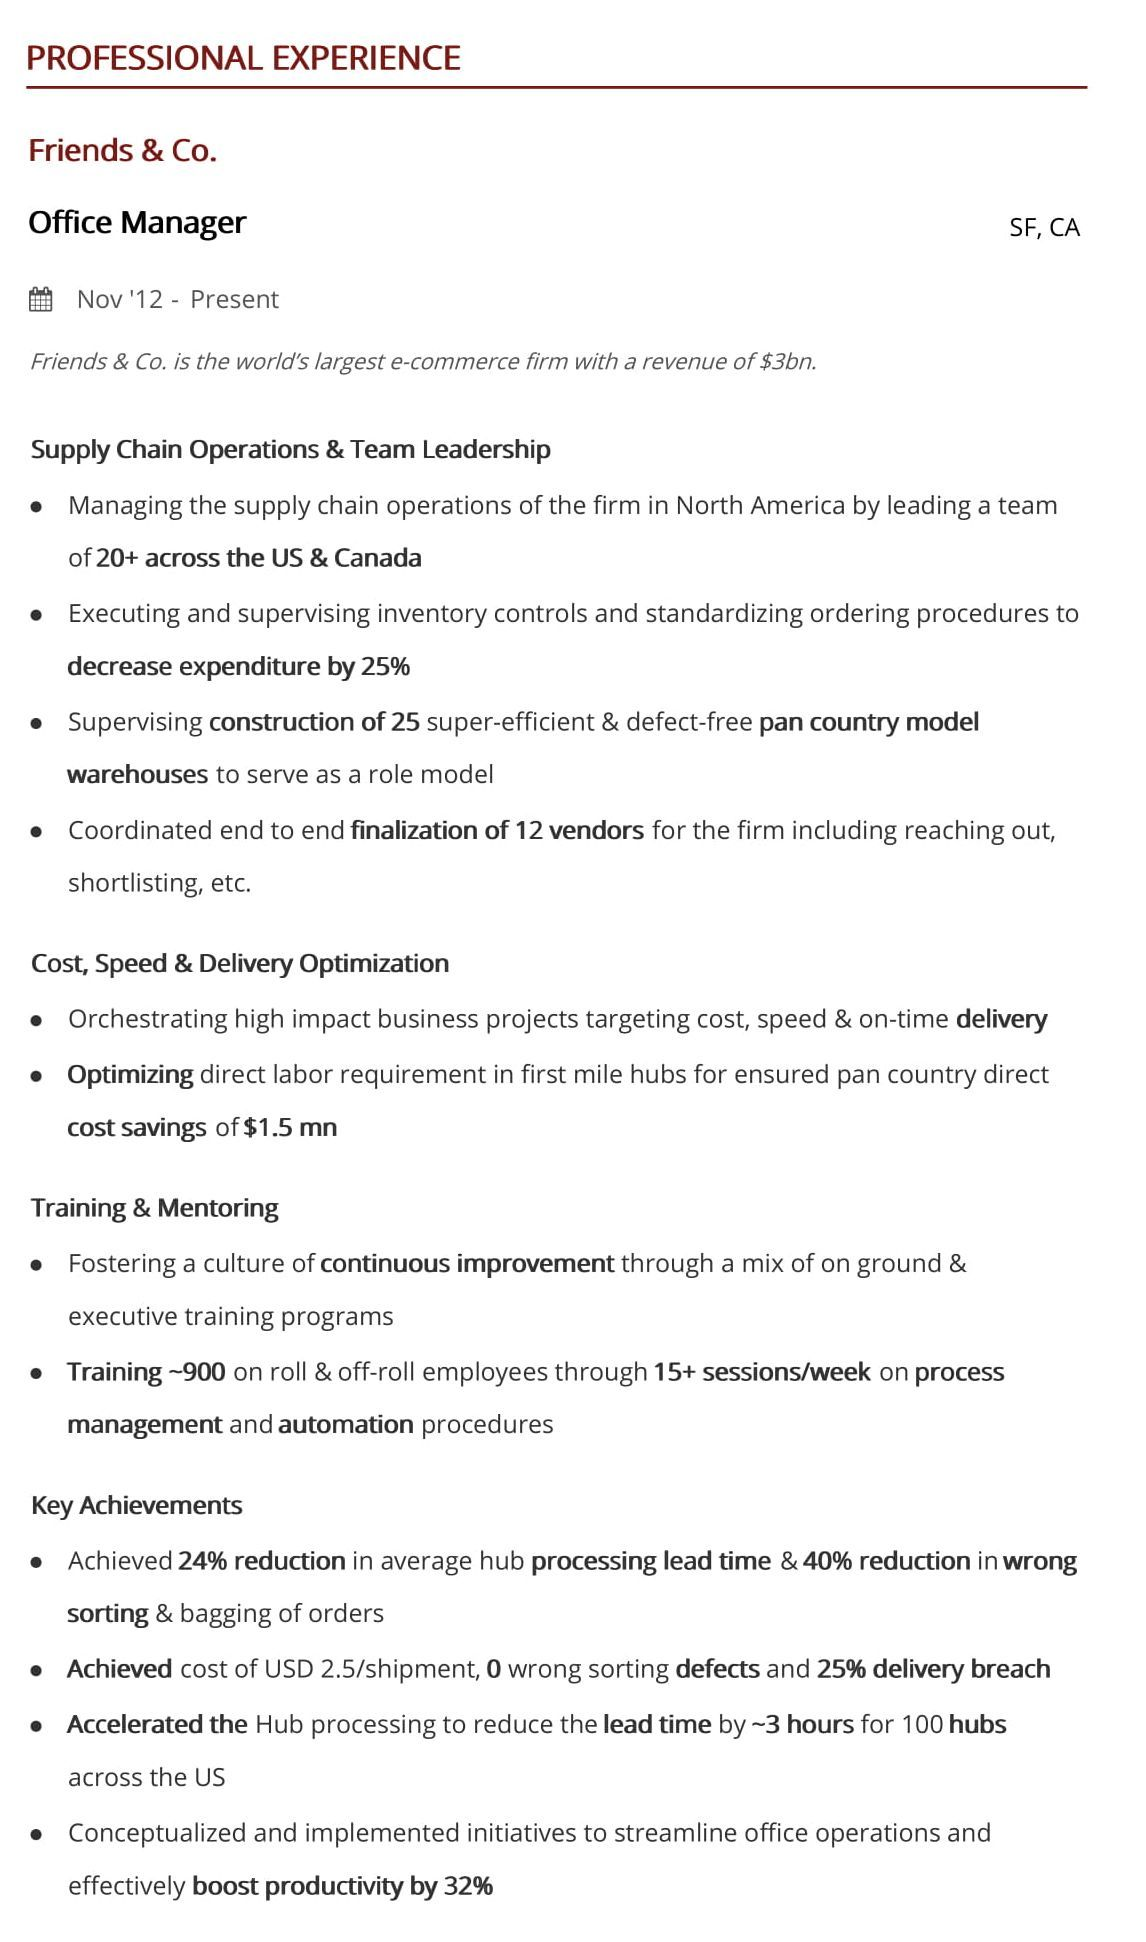 office manager resume step guide with samples examples summary hiration sample Resume Office Manager Resume Summary Examples